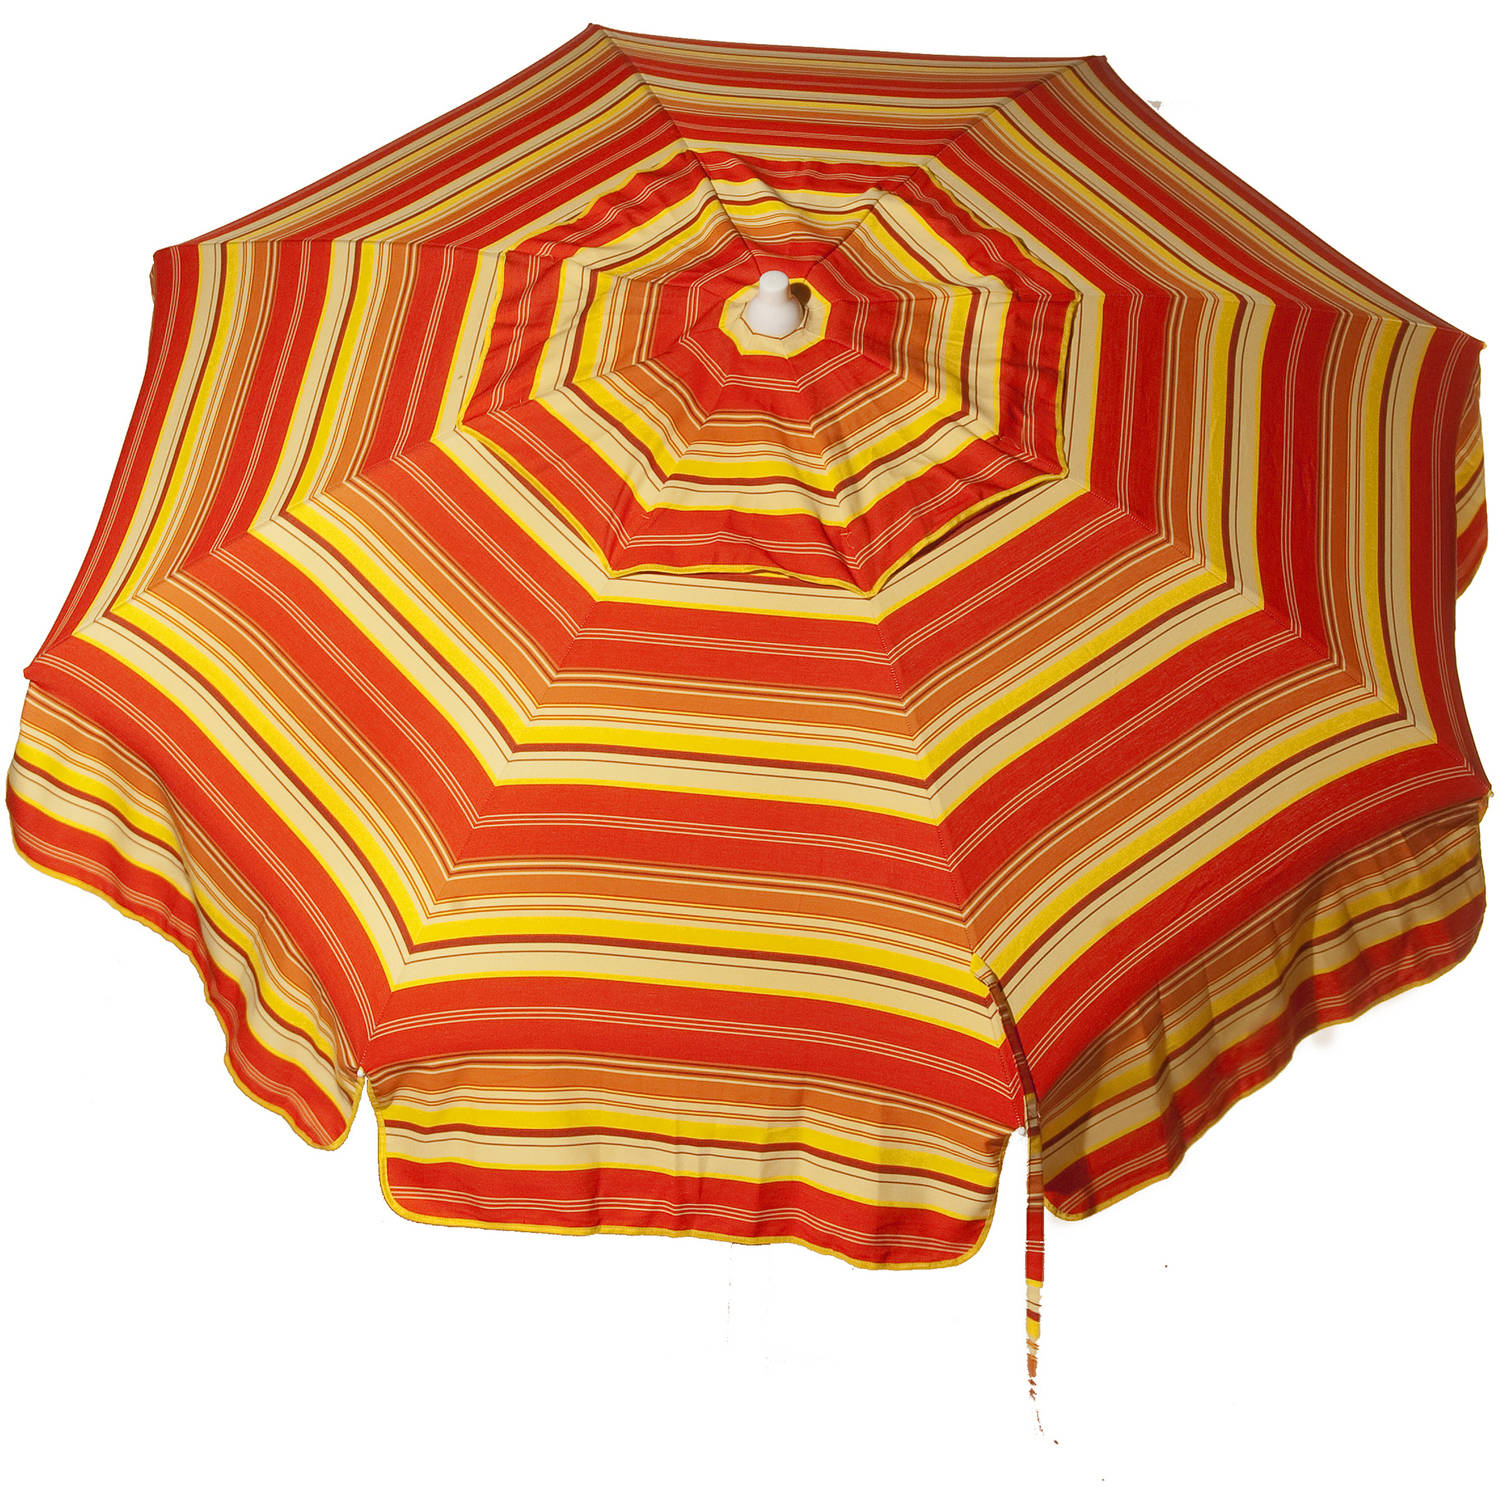 DestinationGear Italian 6' Umbrella Acrylic Stripes Red, Orange and Yellow Patio Pole